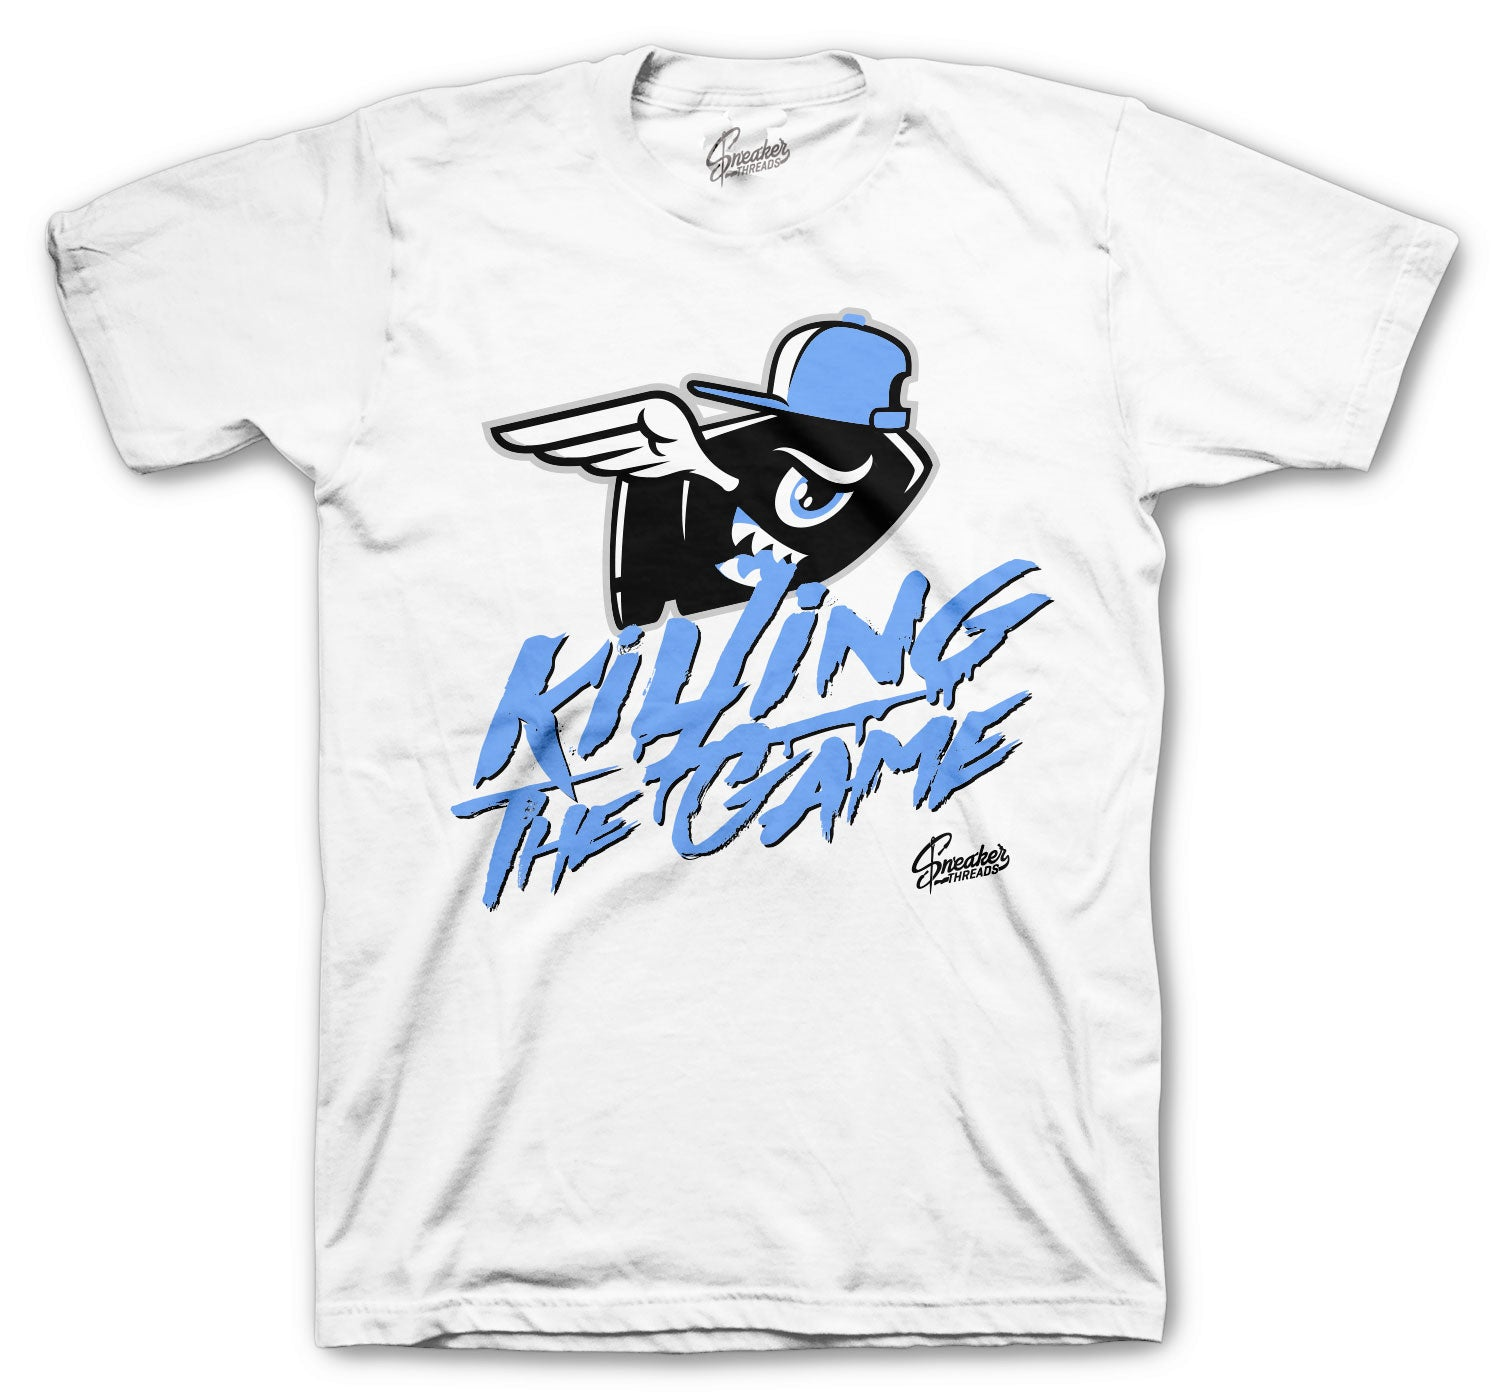 Jordan 1 Hyper Royal Killing The Game Shirt